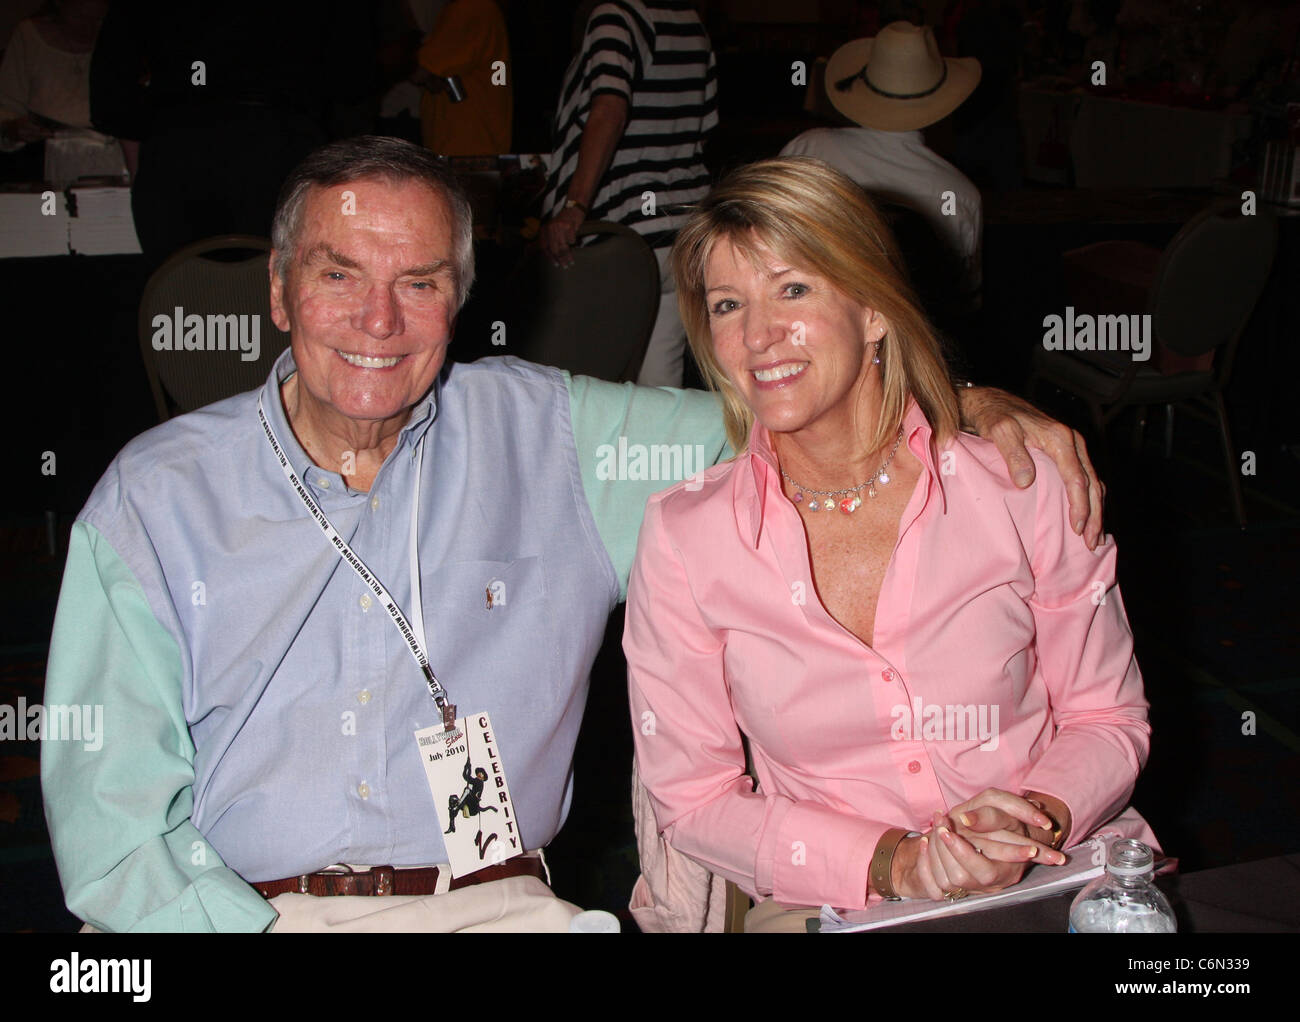 Peter Marshall and Laurie Marshall The Hollywood Show at the Marriott Hotel in Burbank Los Angeles, California, - Stock Image